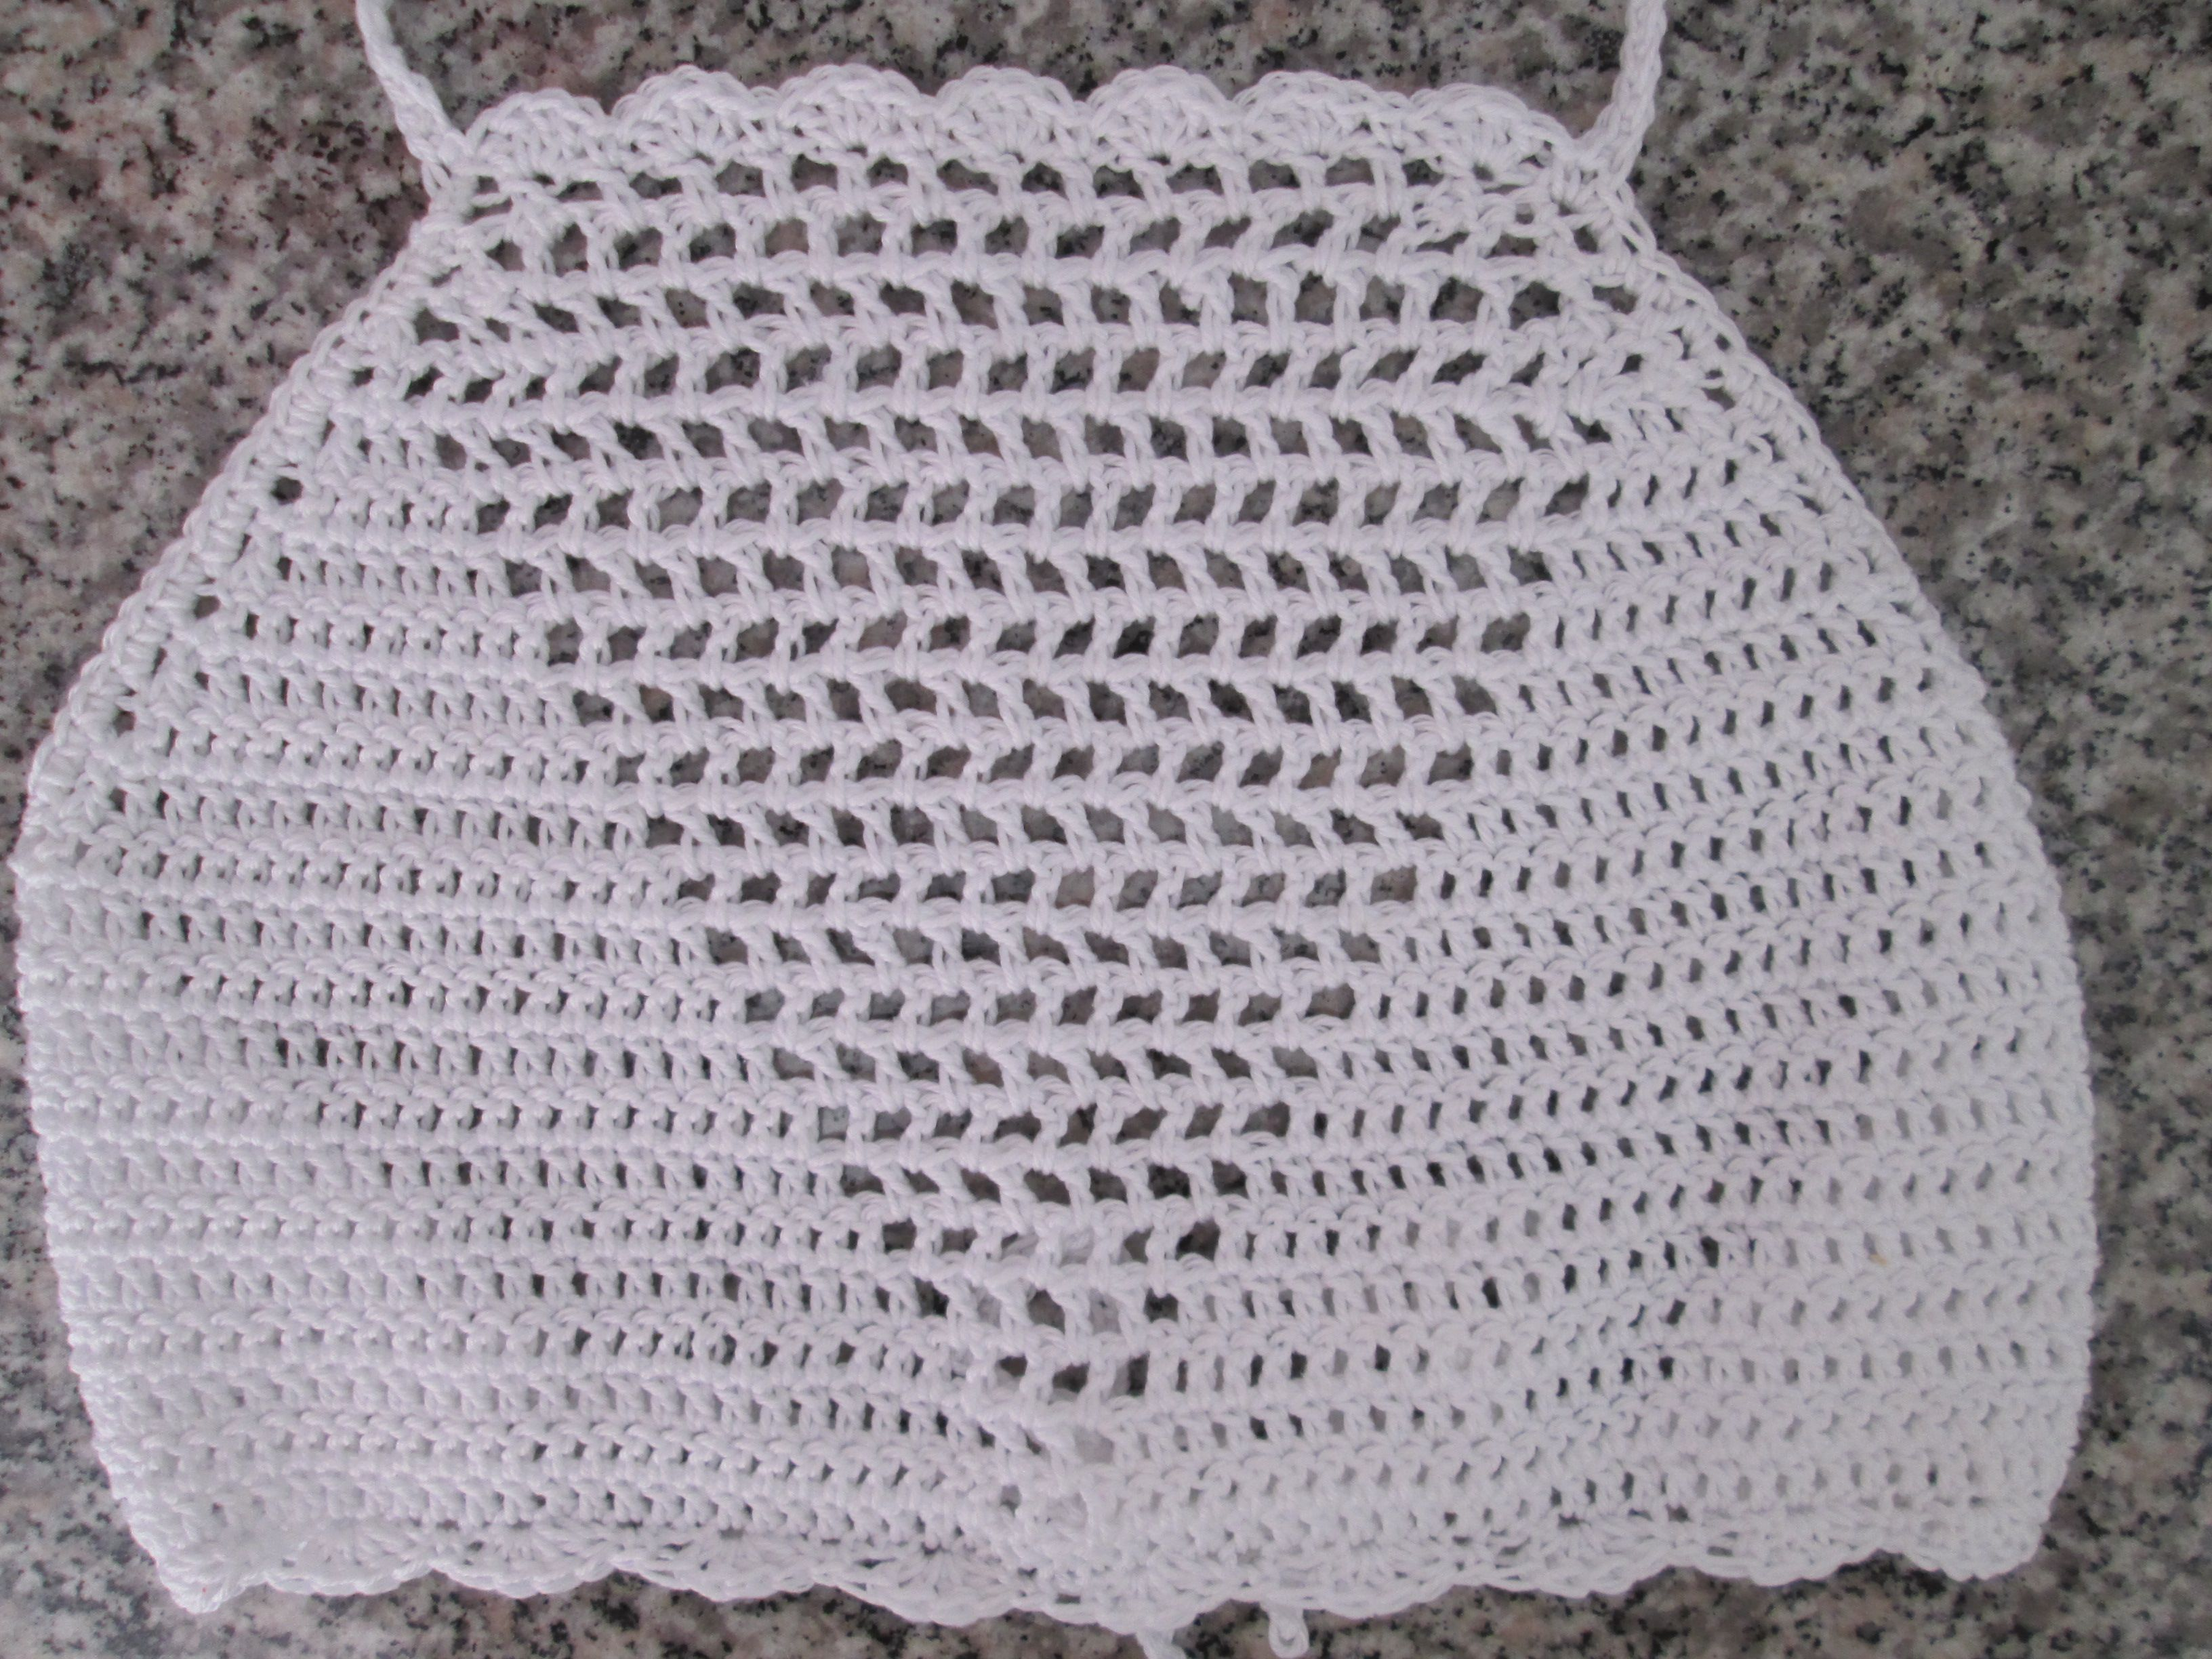 Crochet high neck top in white cotton | MaggieMay crochet boutique ...